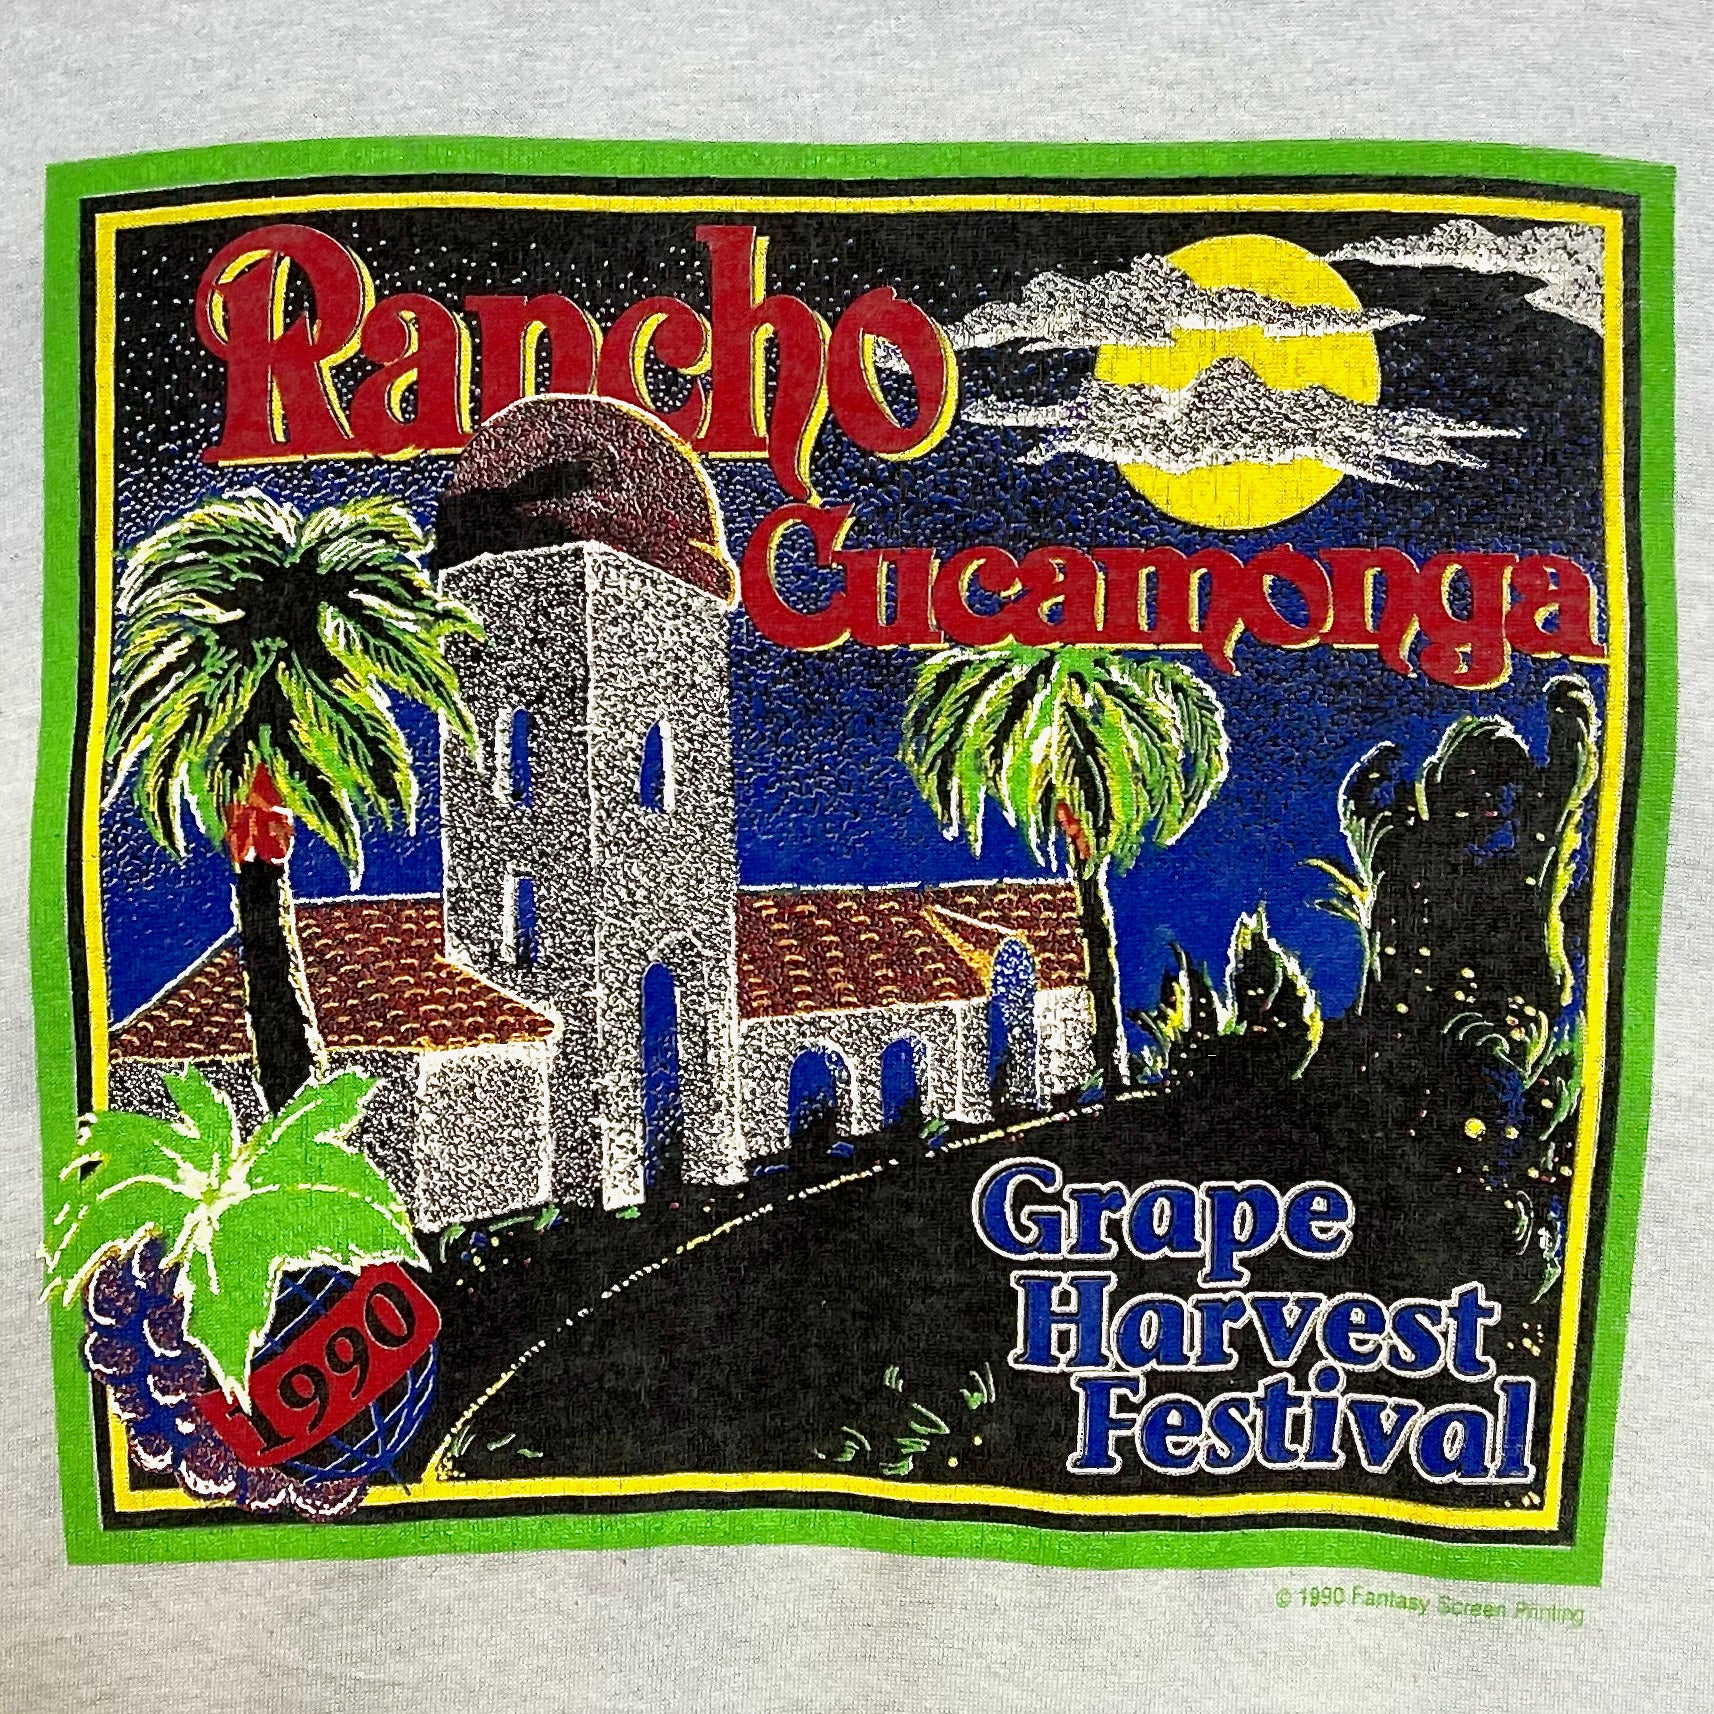 1990 GRAPE HARVEST FESTIVAL RANCHO CUCAMONGA (XL)